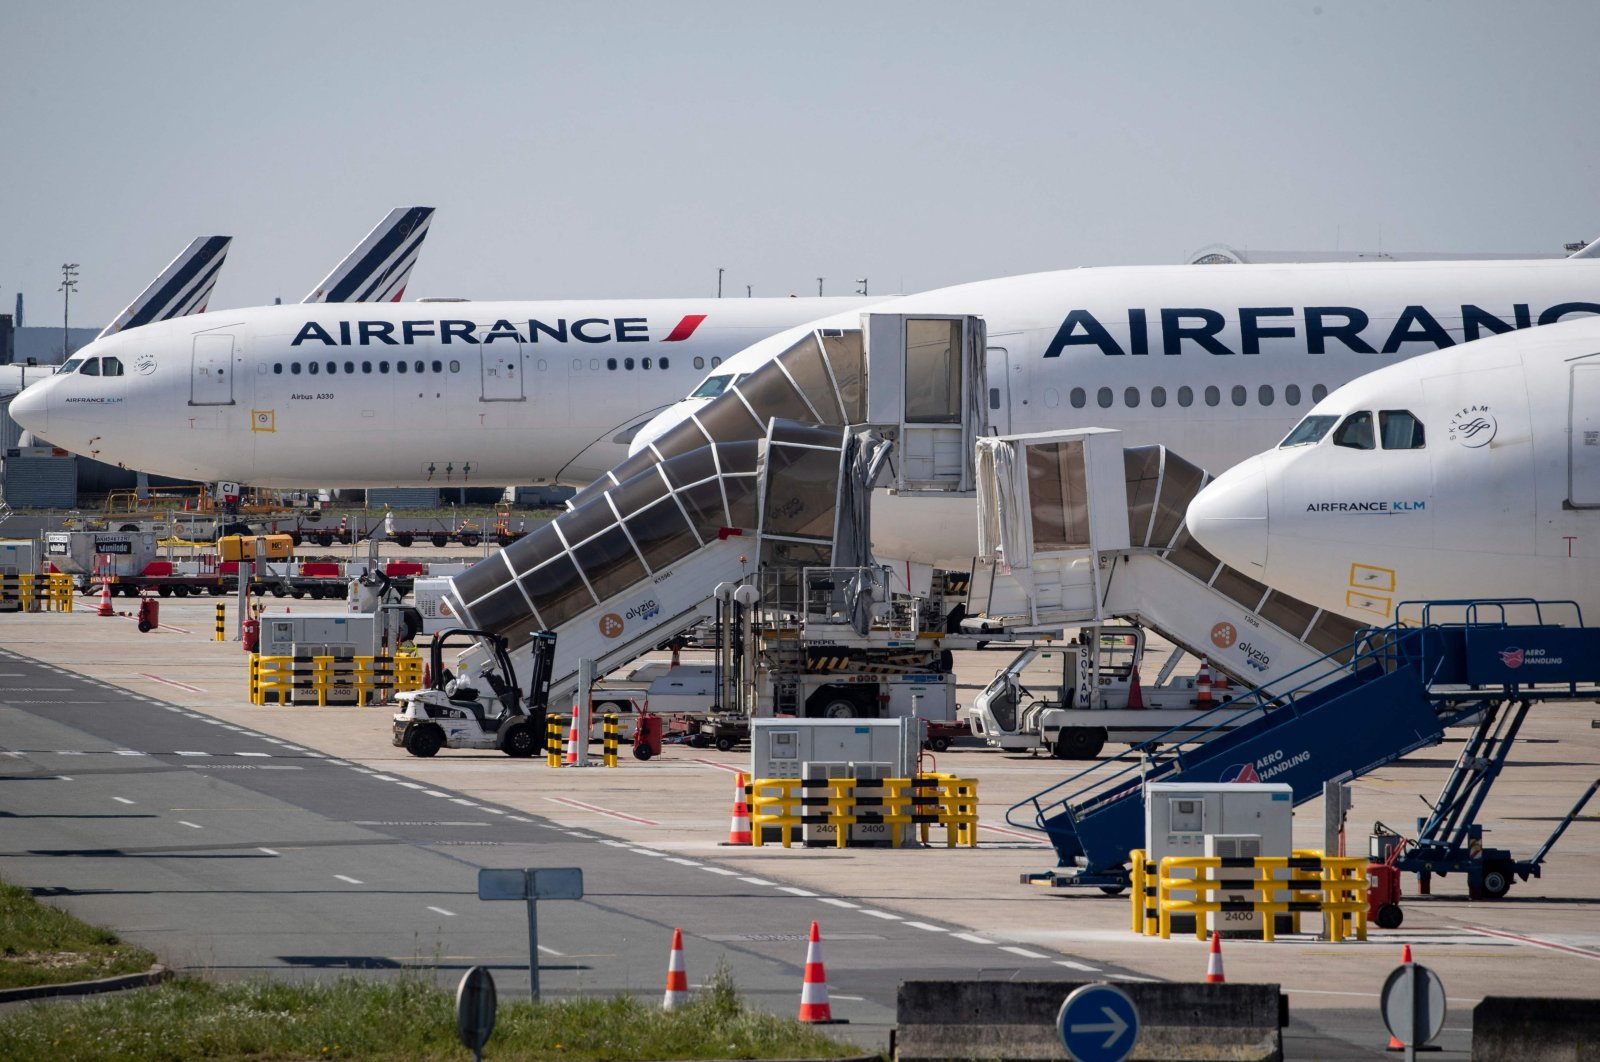 Grounded Air France airplanes at the Roissy-Charles de Gaulle airport in Roissy-en-France, north of Paris, France, March 24, 2020. (AFP Photo)